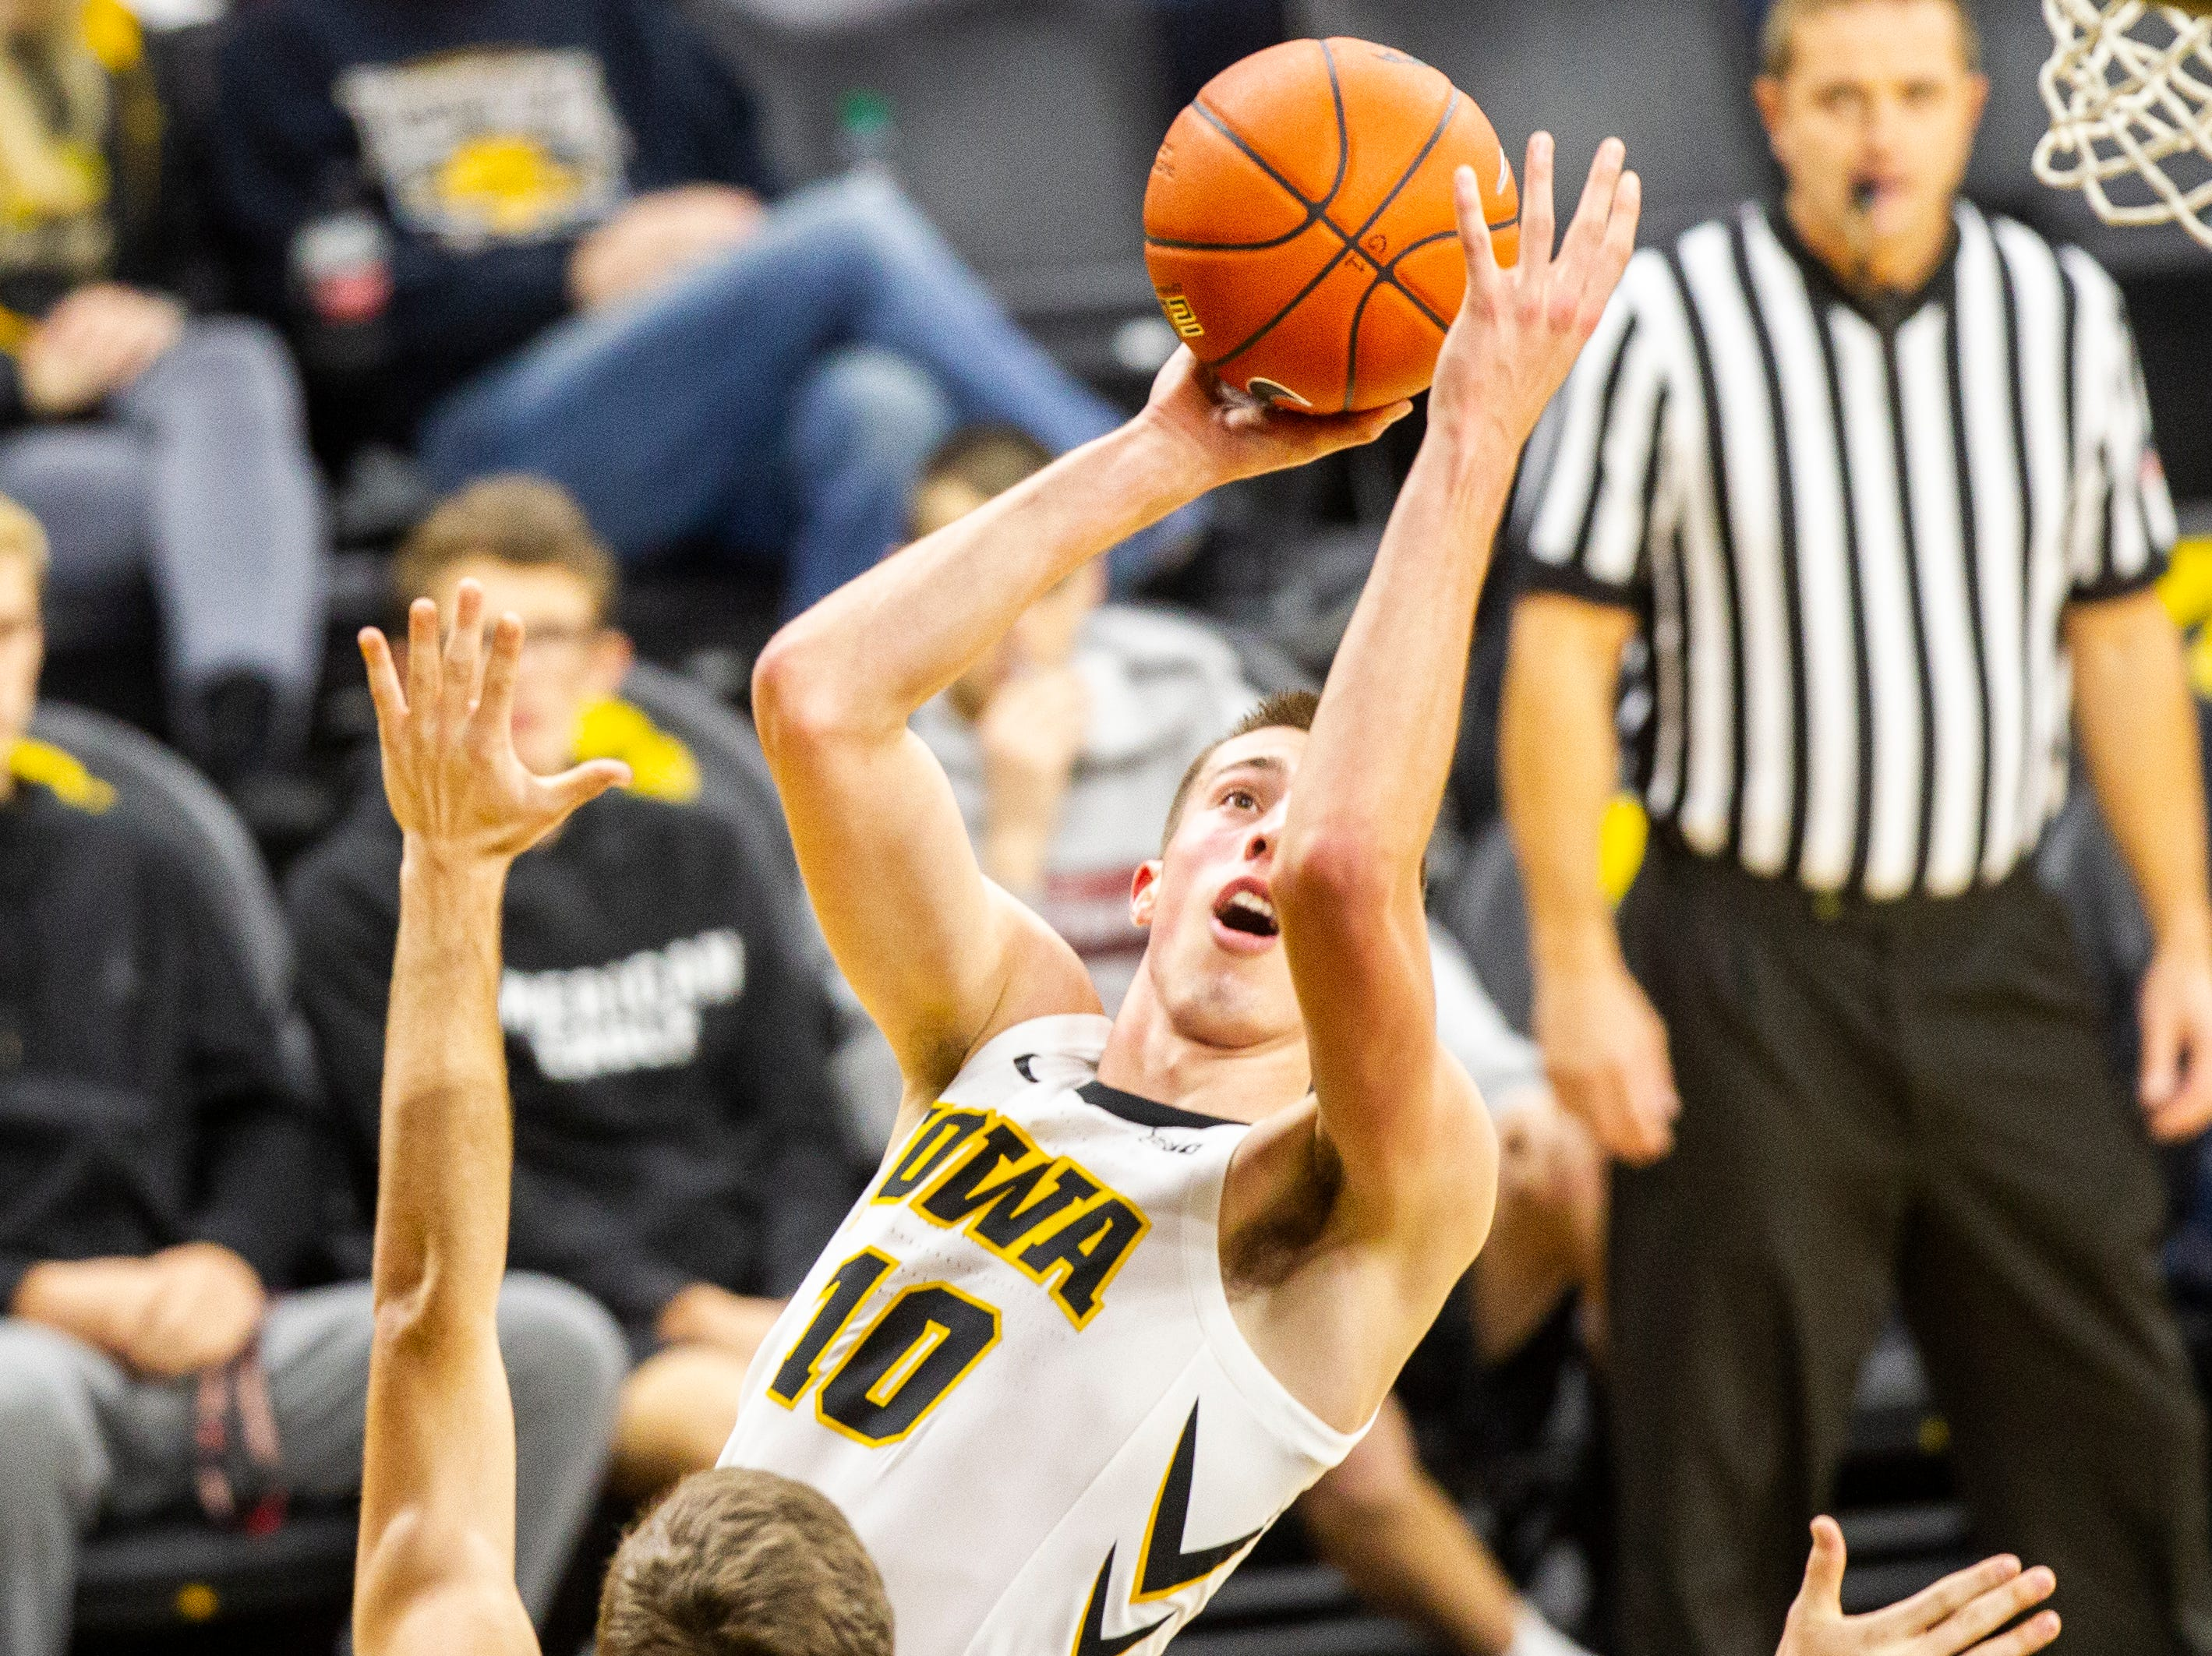 Iowa guard Joe Wieskamp (10) shoots a basket during a men's basketball exhibition game on Sunday, Nov. 4, 2018, at Carver-Hawkeye Arena in Iowa City.